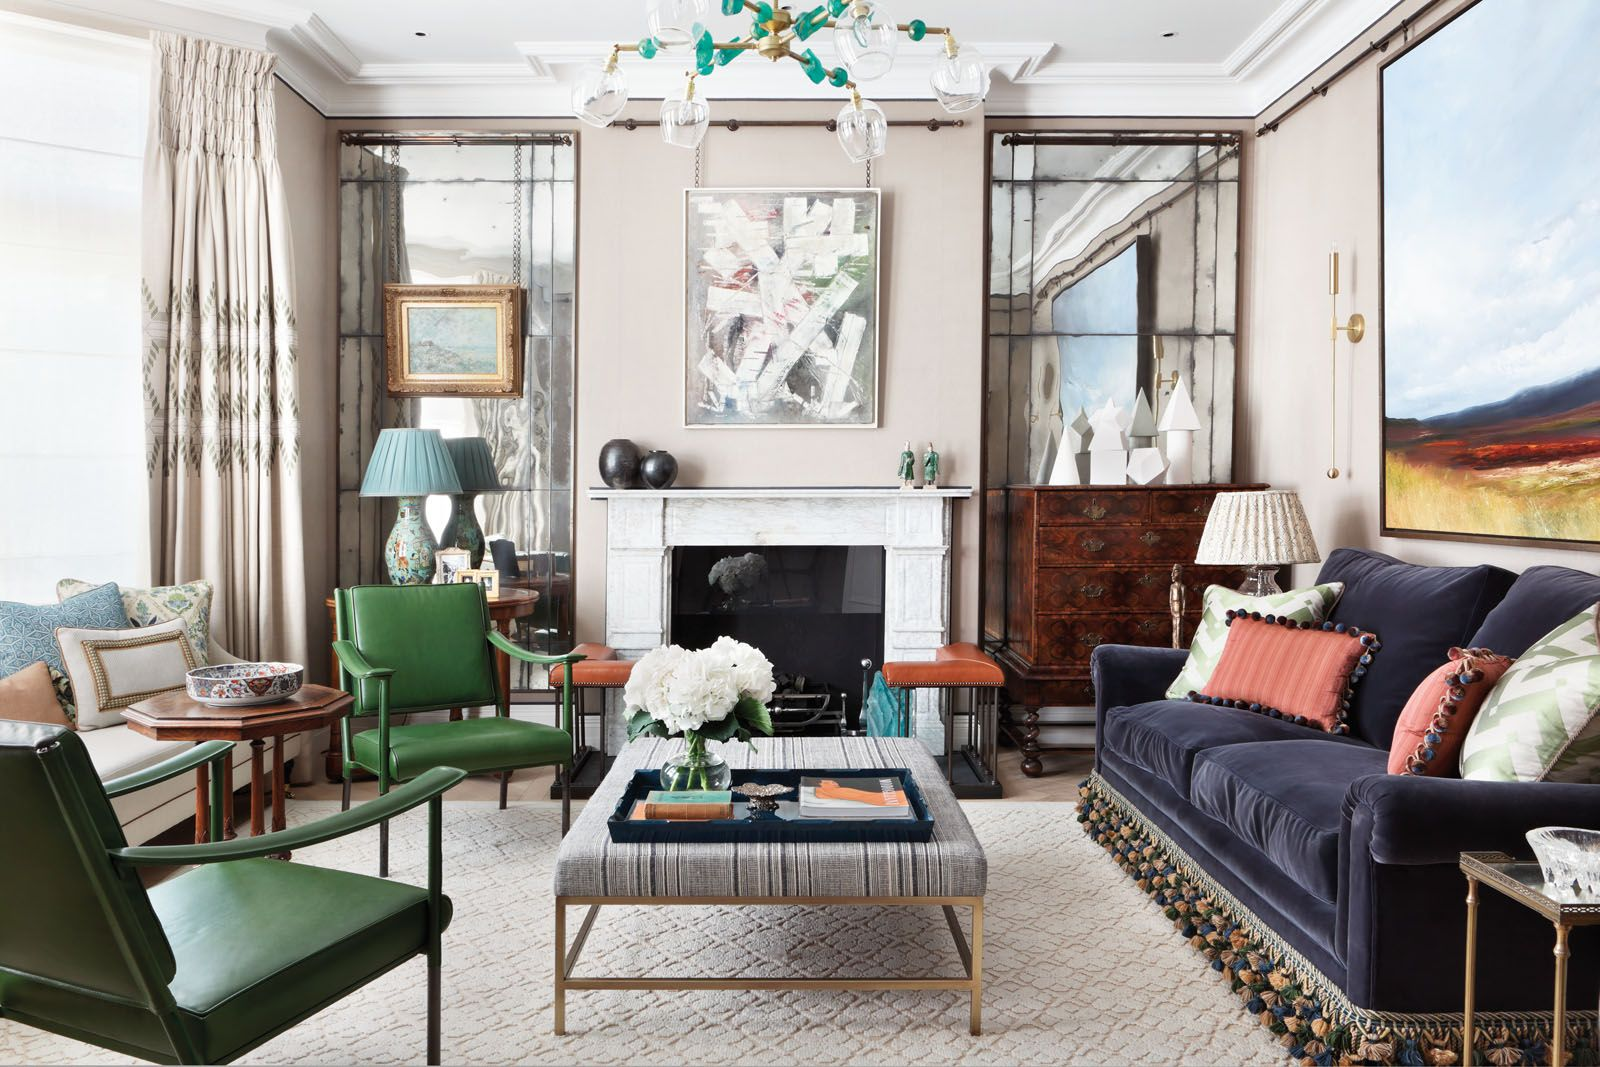 Home Inspo: A London Townhouse With A Colourful Mix of Art And Vintage Pieces